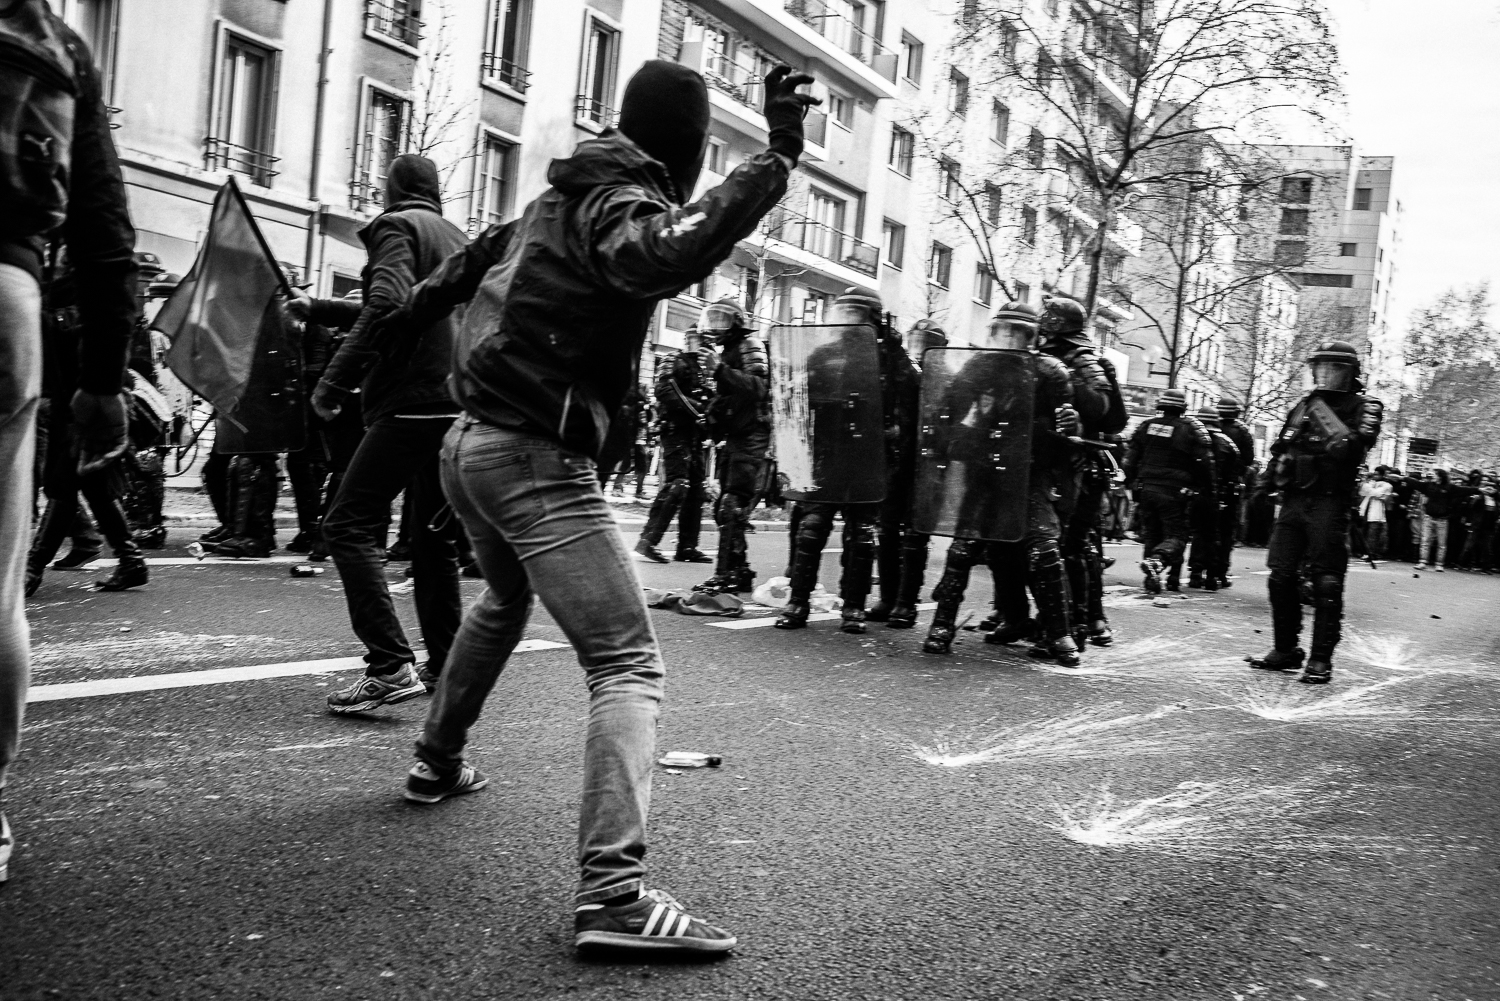 Protestors clashing with the riot police,5th April 2016.